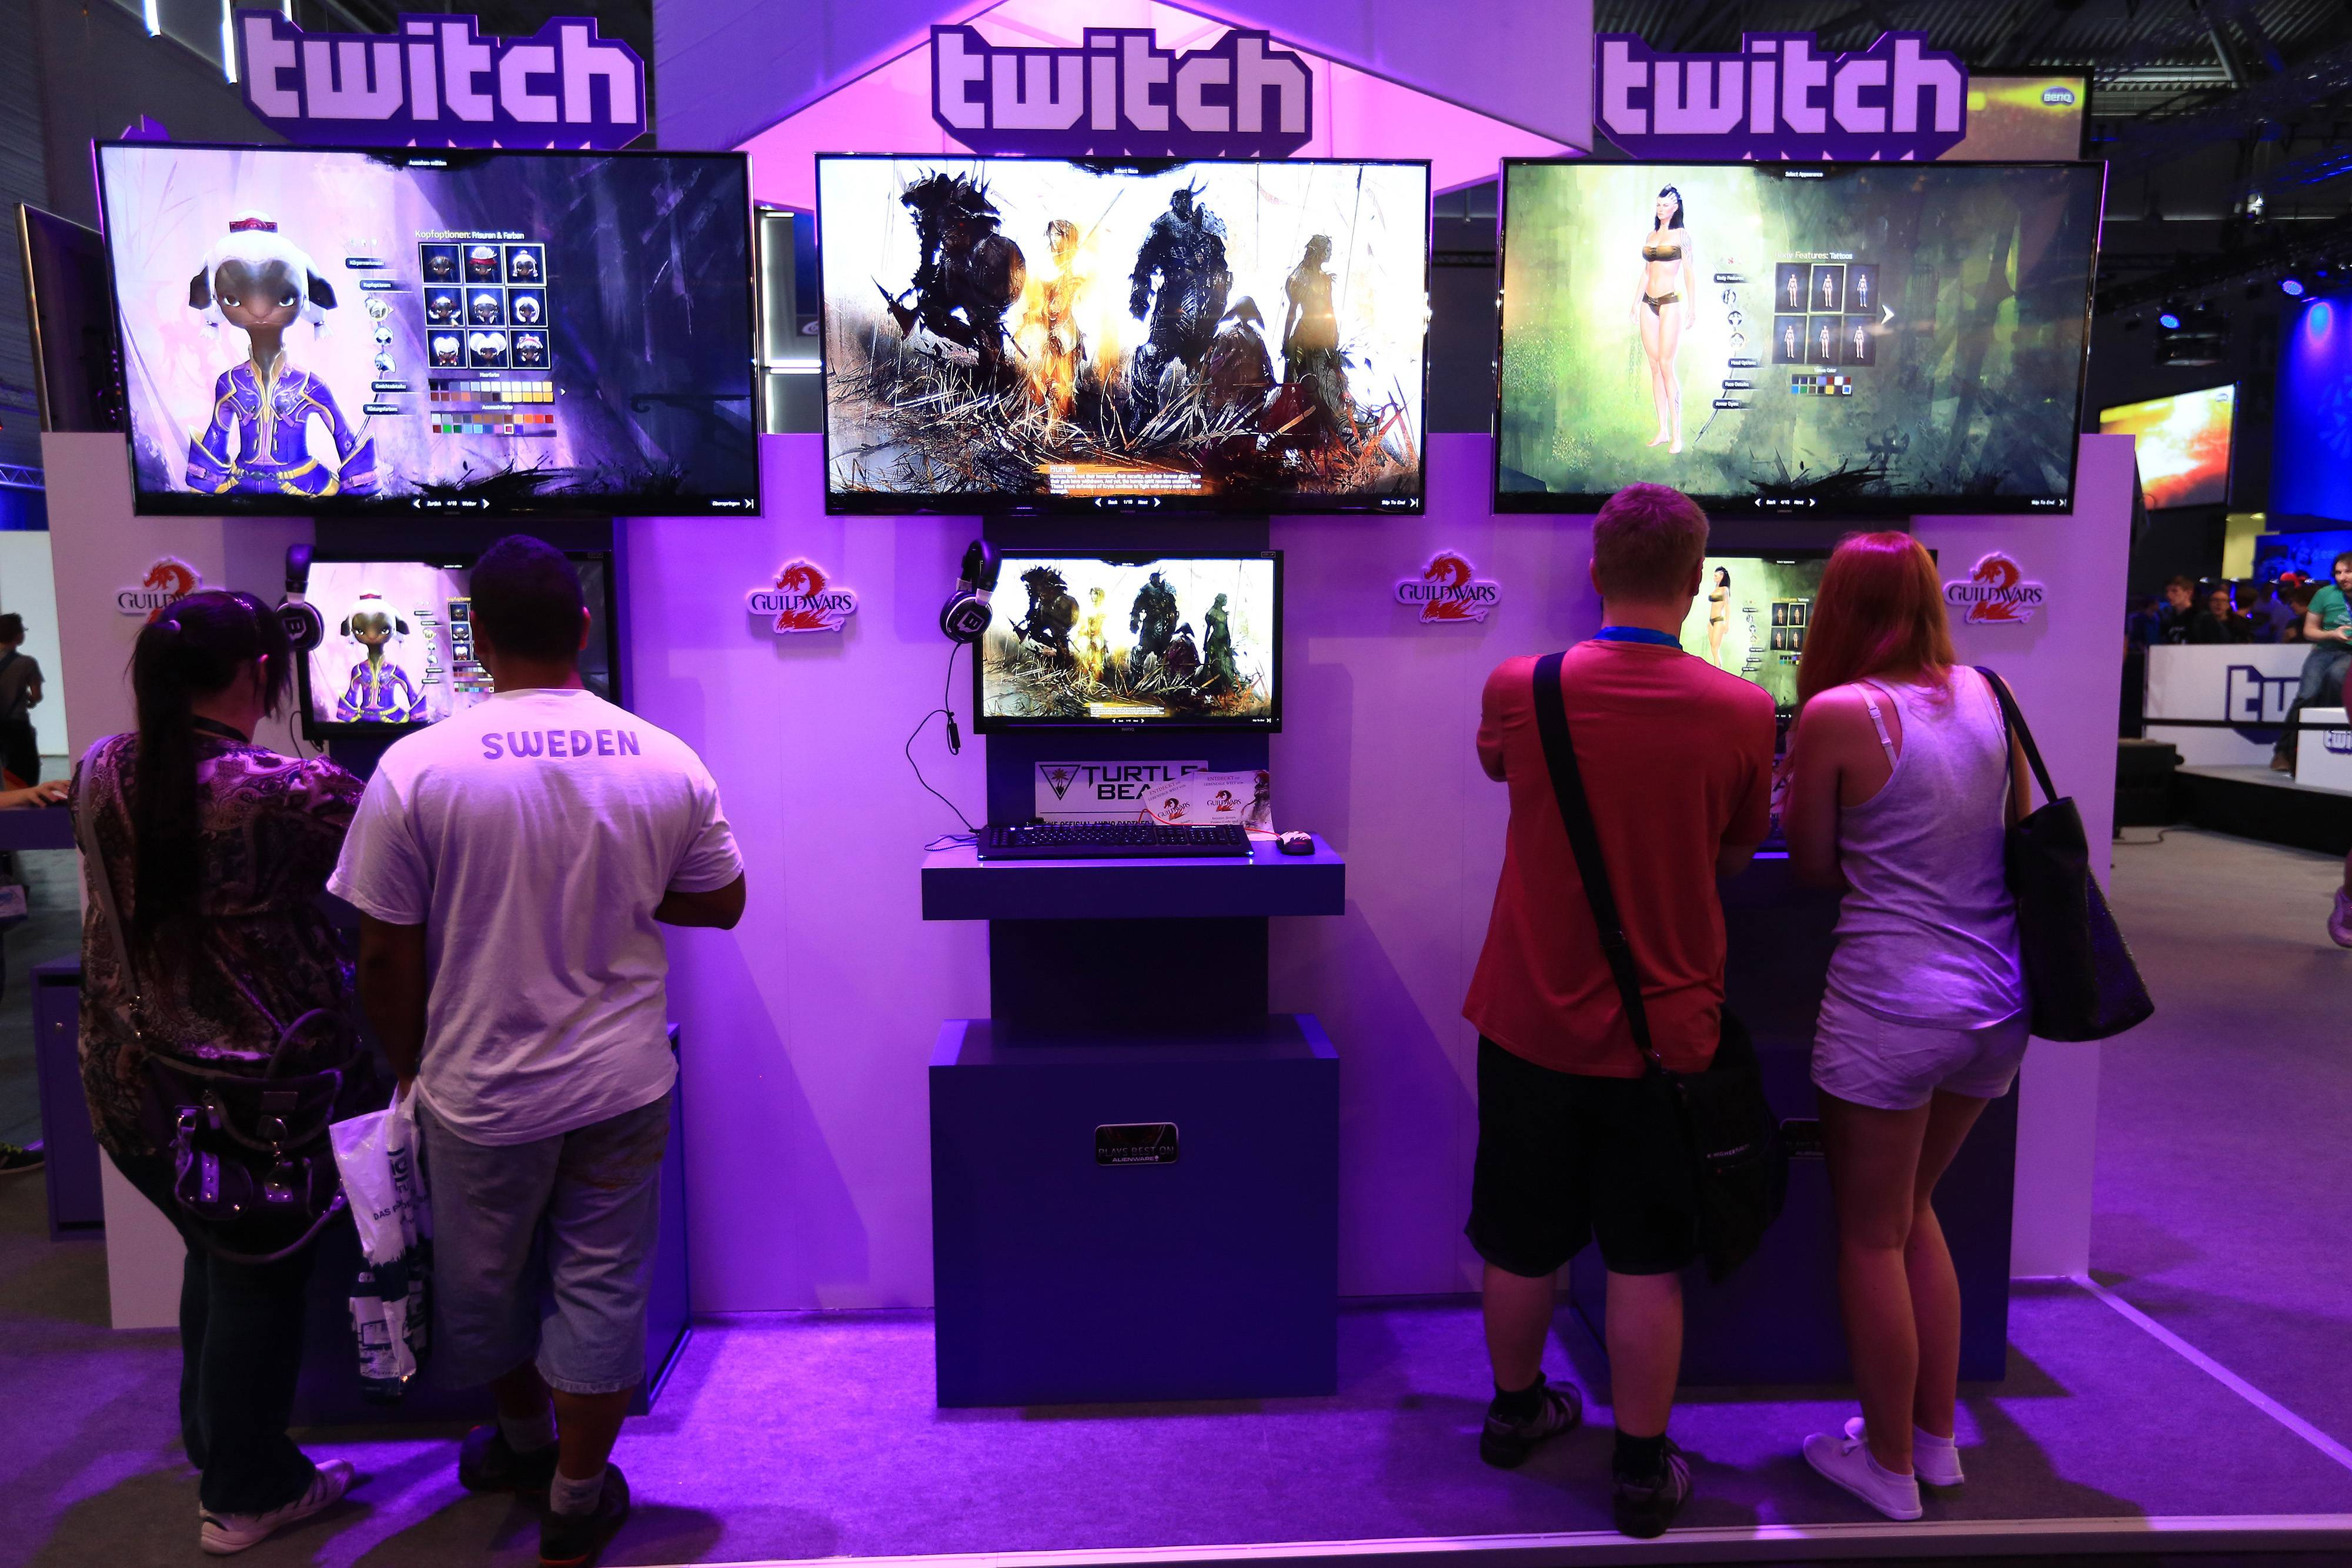 Visitors stream online computer games on the Twitch Interactive Inc. stand at Gamescom video games trade fair in Cologne, Germany.